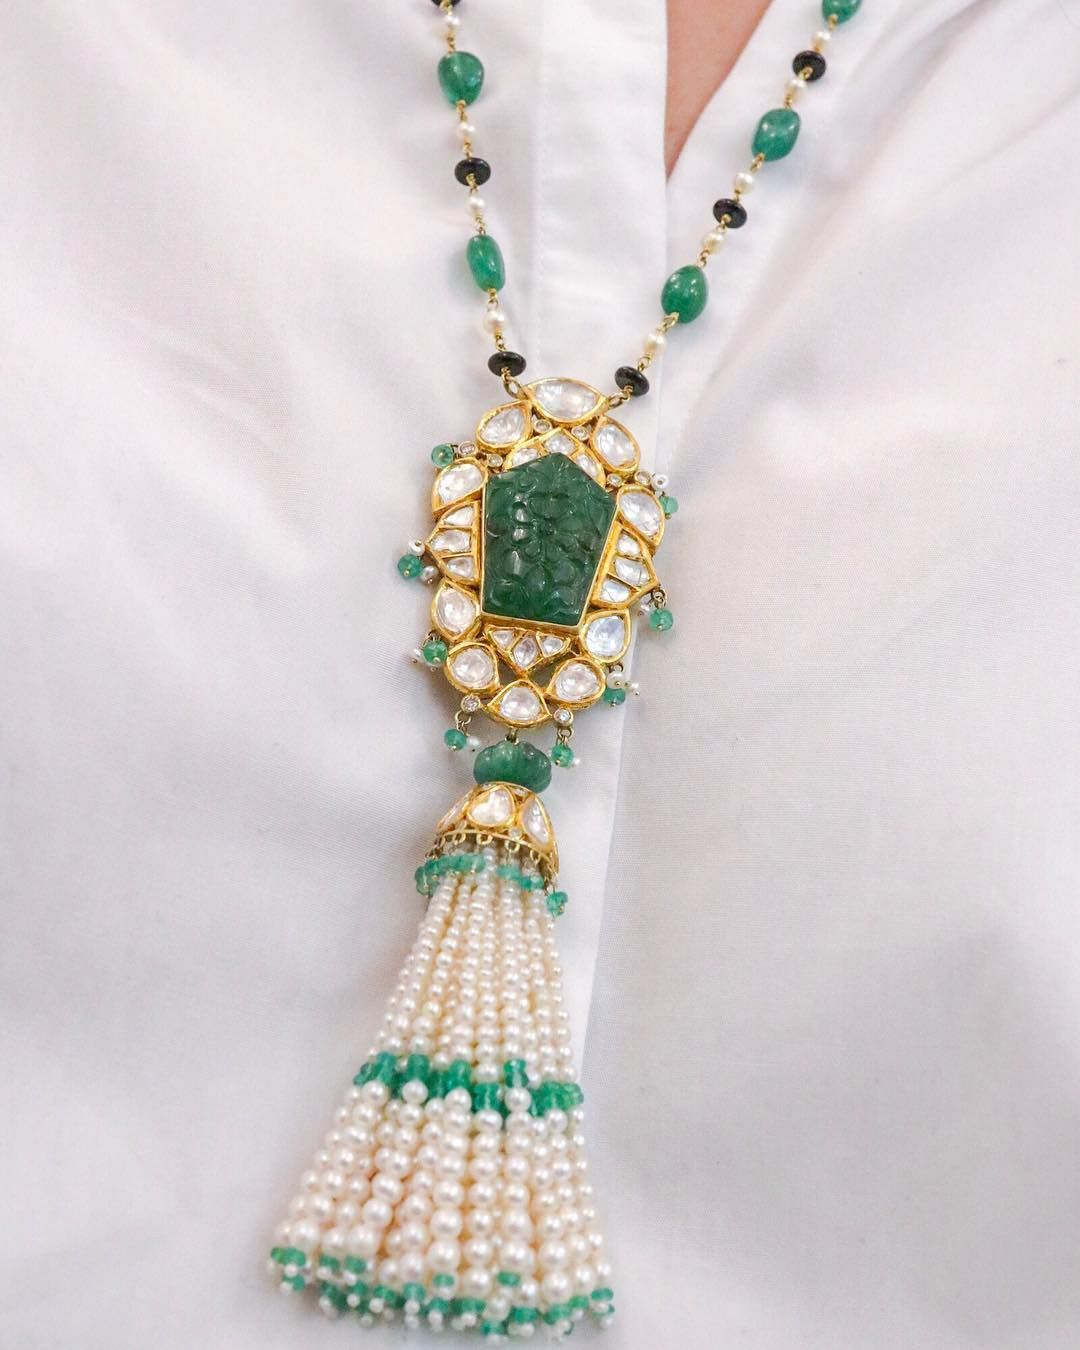 This elegant necklace by Jewels of Jaipur, blends two iconic